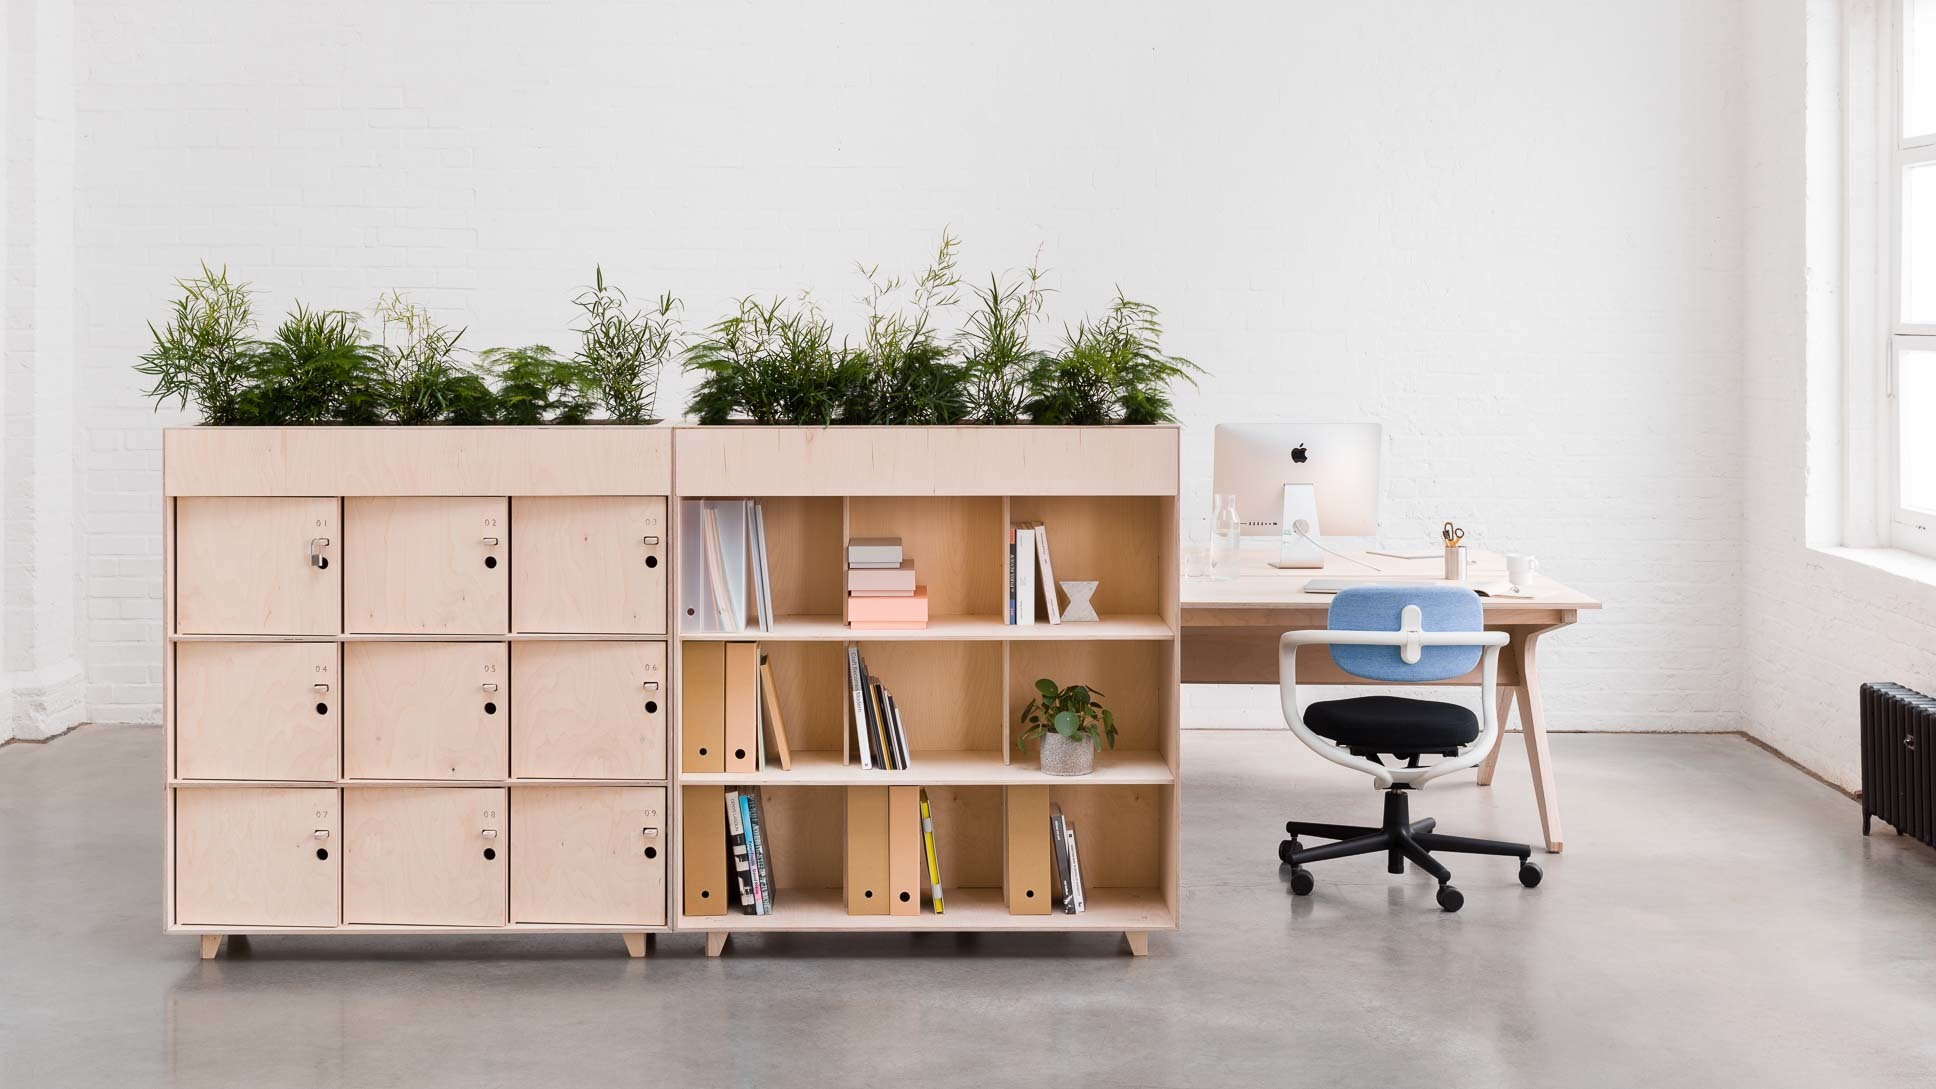 opendesk_furniture_fin-bookshelf_product-page_gallery-image-opendesk_shot3_2046-copy.default.jpg